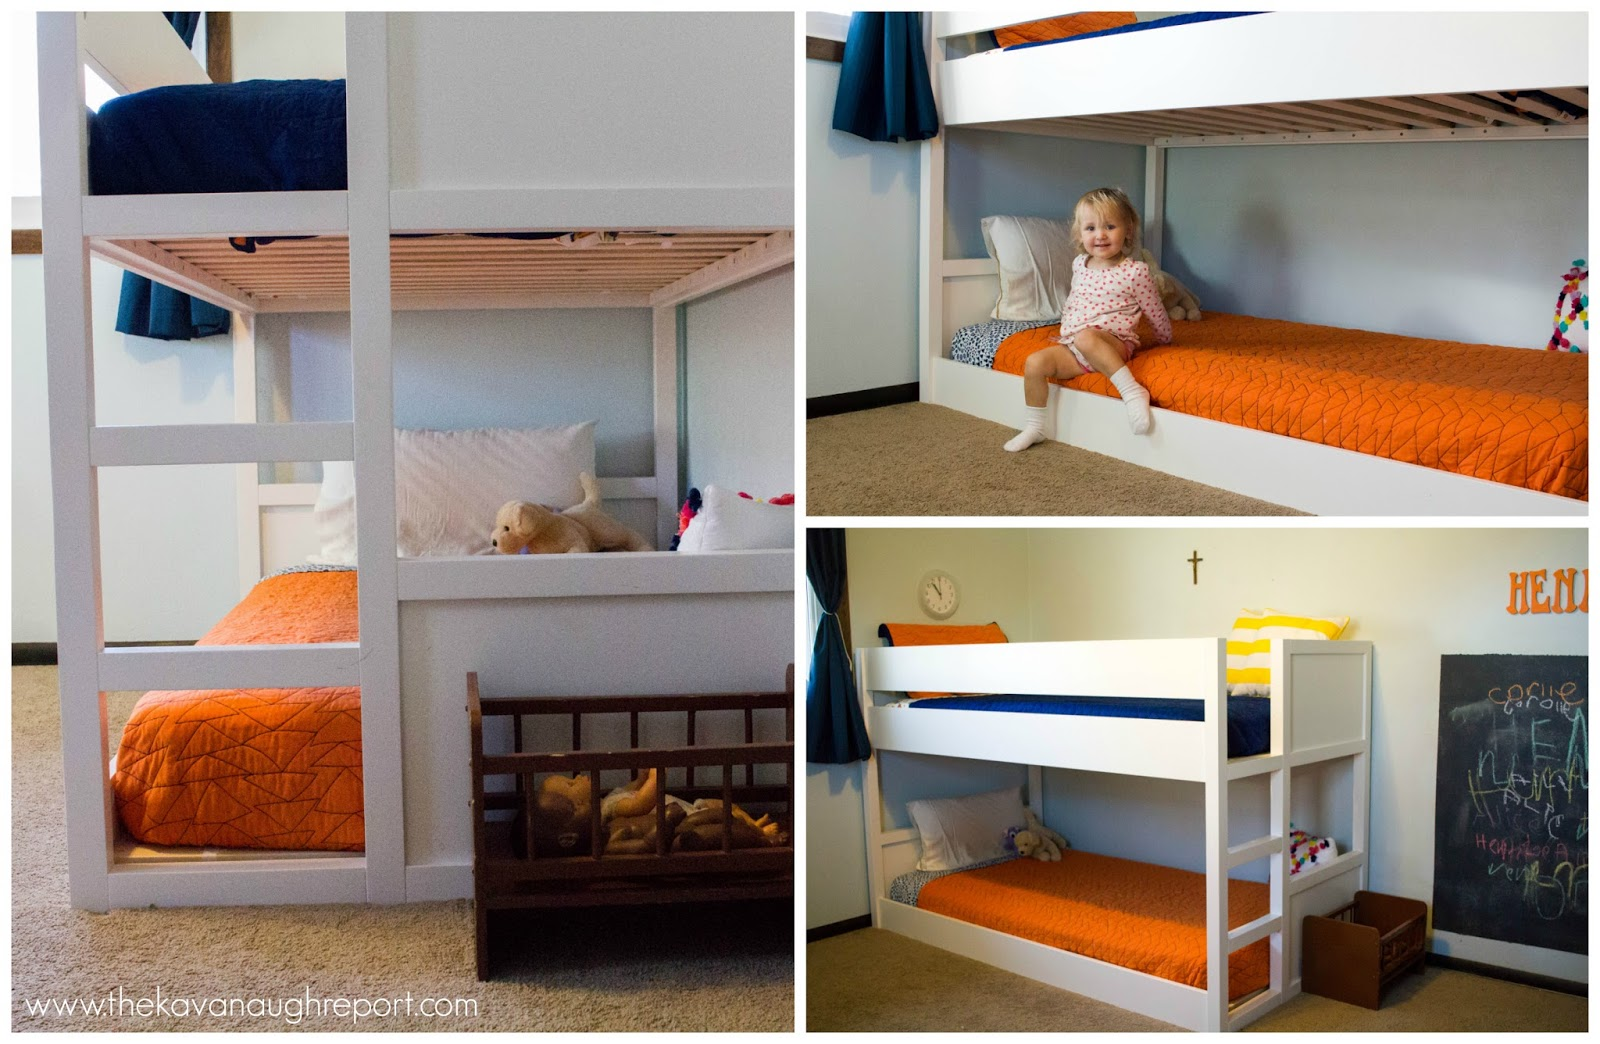 Trend It was not an easy feat to find a bunk bed that fit these needs If you want people to look at you funny go to a furniture store and ask for